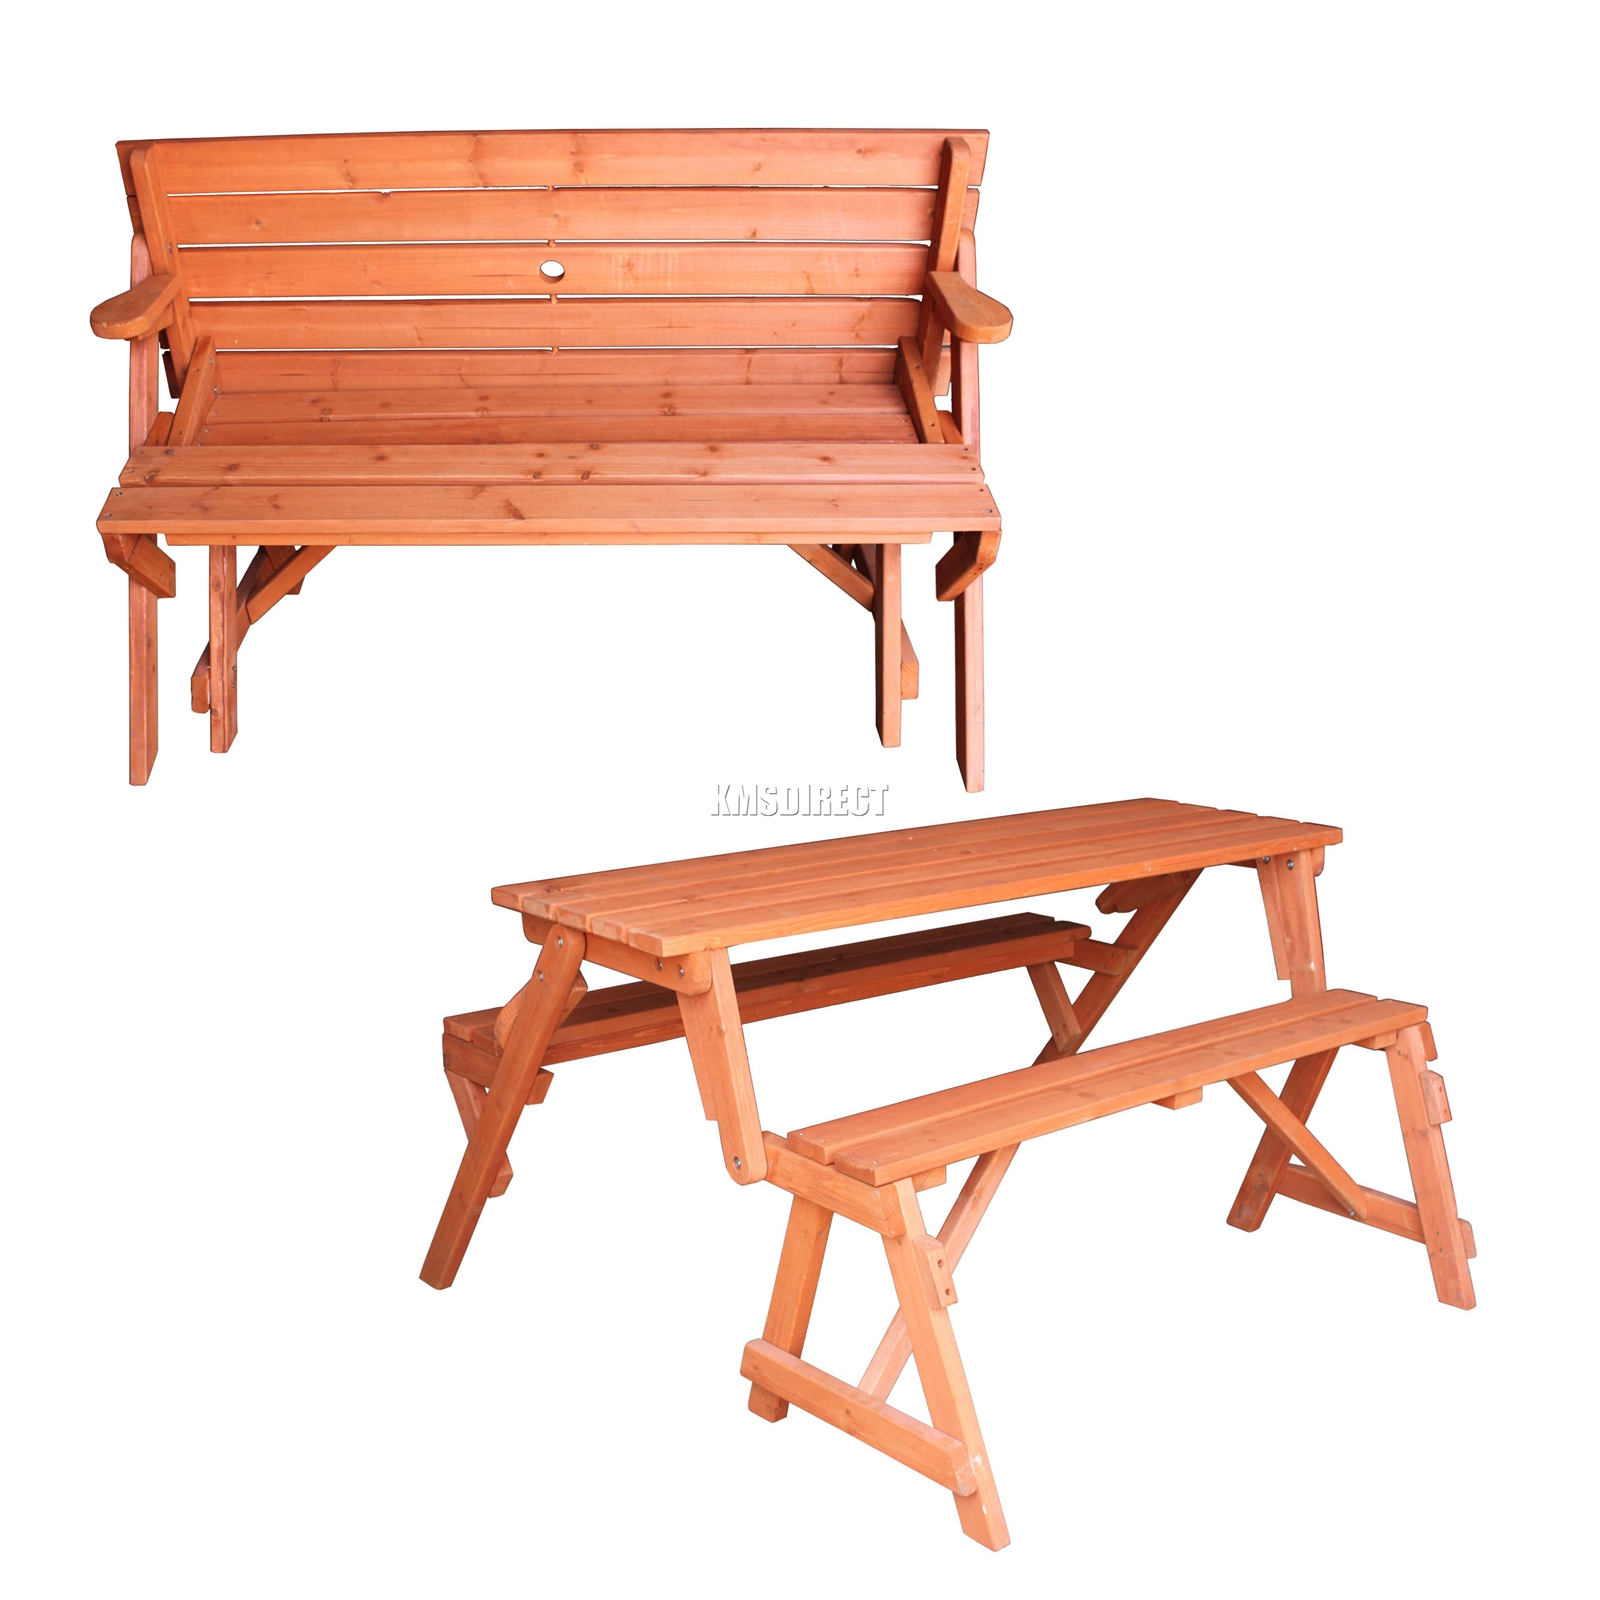 Fhtb01 outdoor garden wooden folding picnic seat table for Outdoor table with bench seats